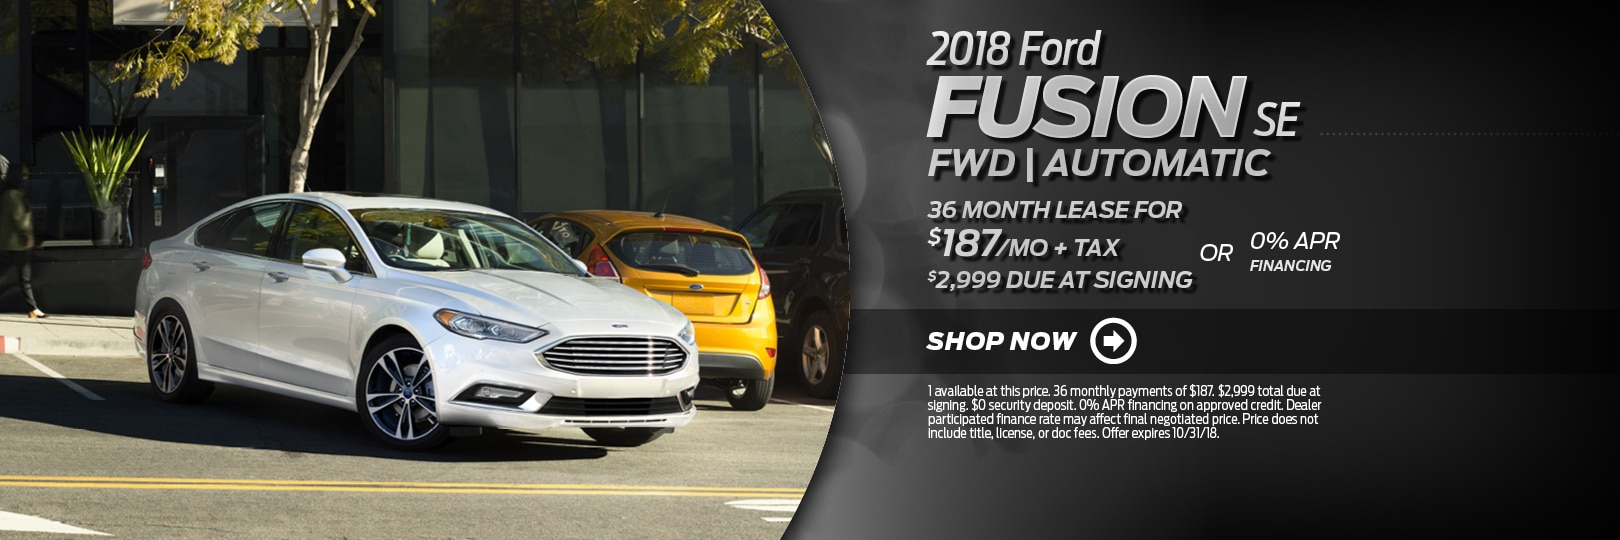 Lithia Ford Missoula >> New Ford & Used Car Dealership in Missoula, Montana | Near Florence, Stevensville & Lolo